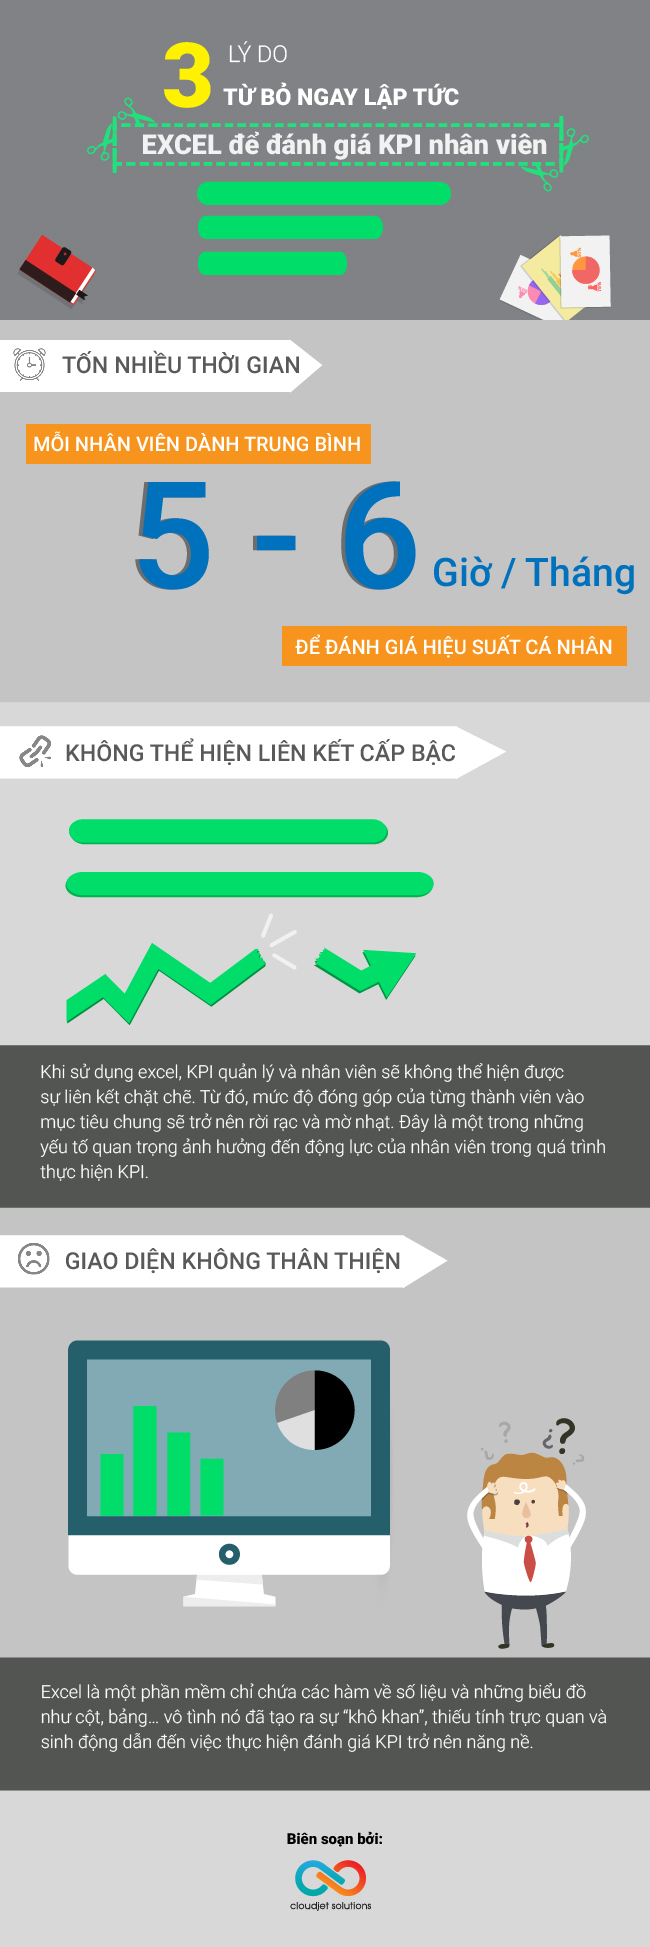 Infographic-3 ly do de tu bo excel